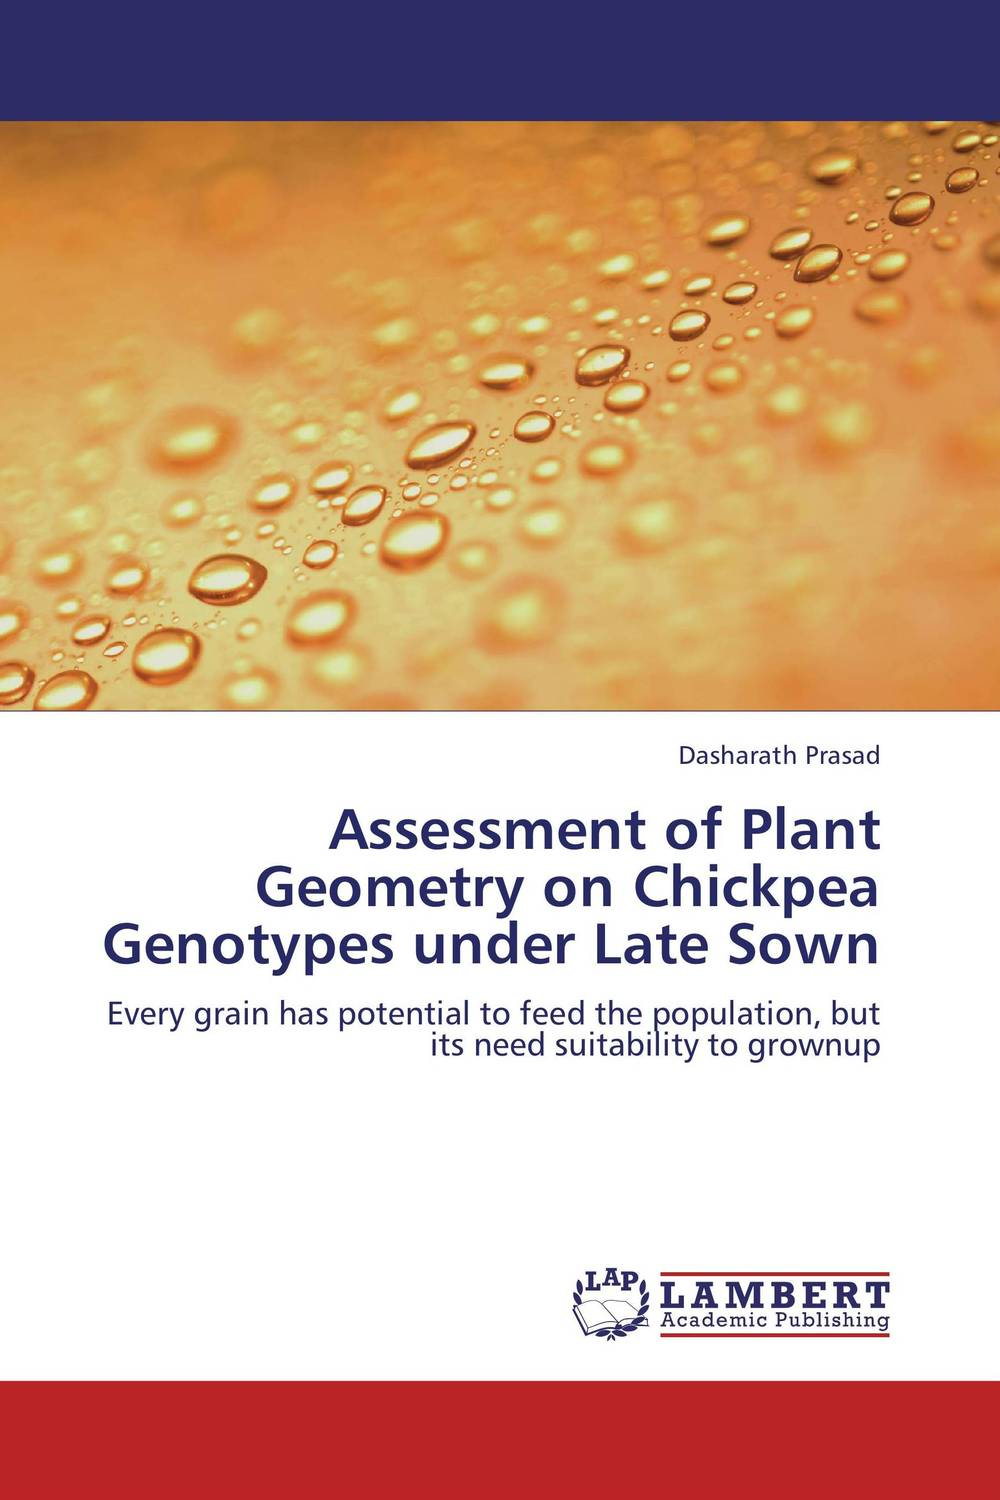 Assessment of Plant Geometry on Chickpea Genotypes under Late Sown